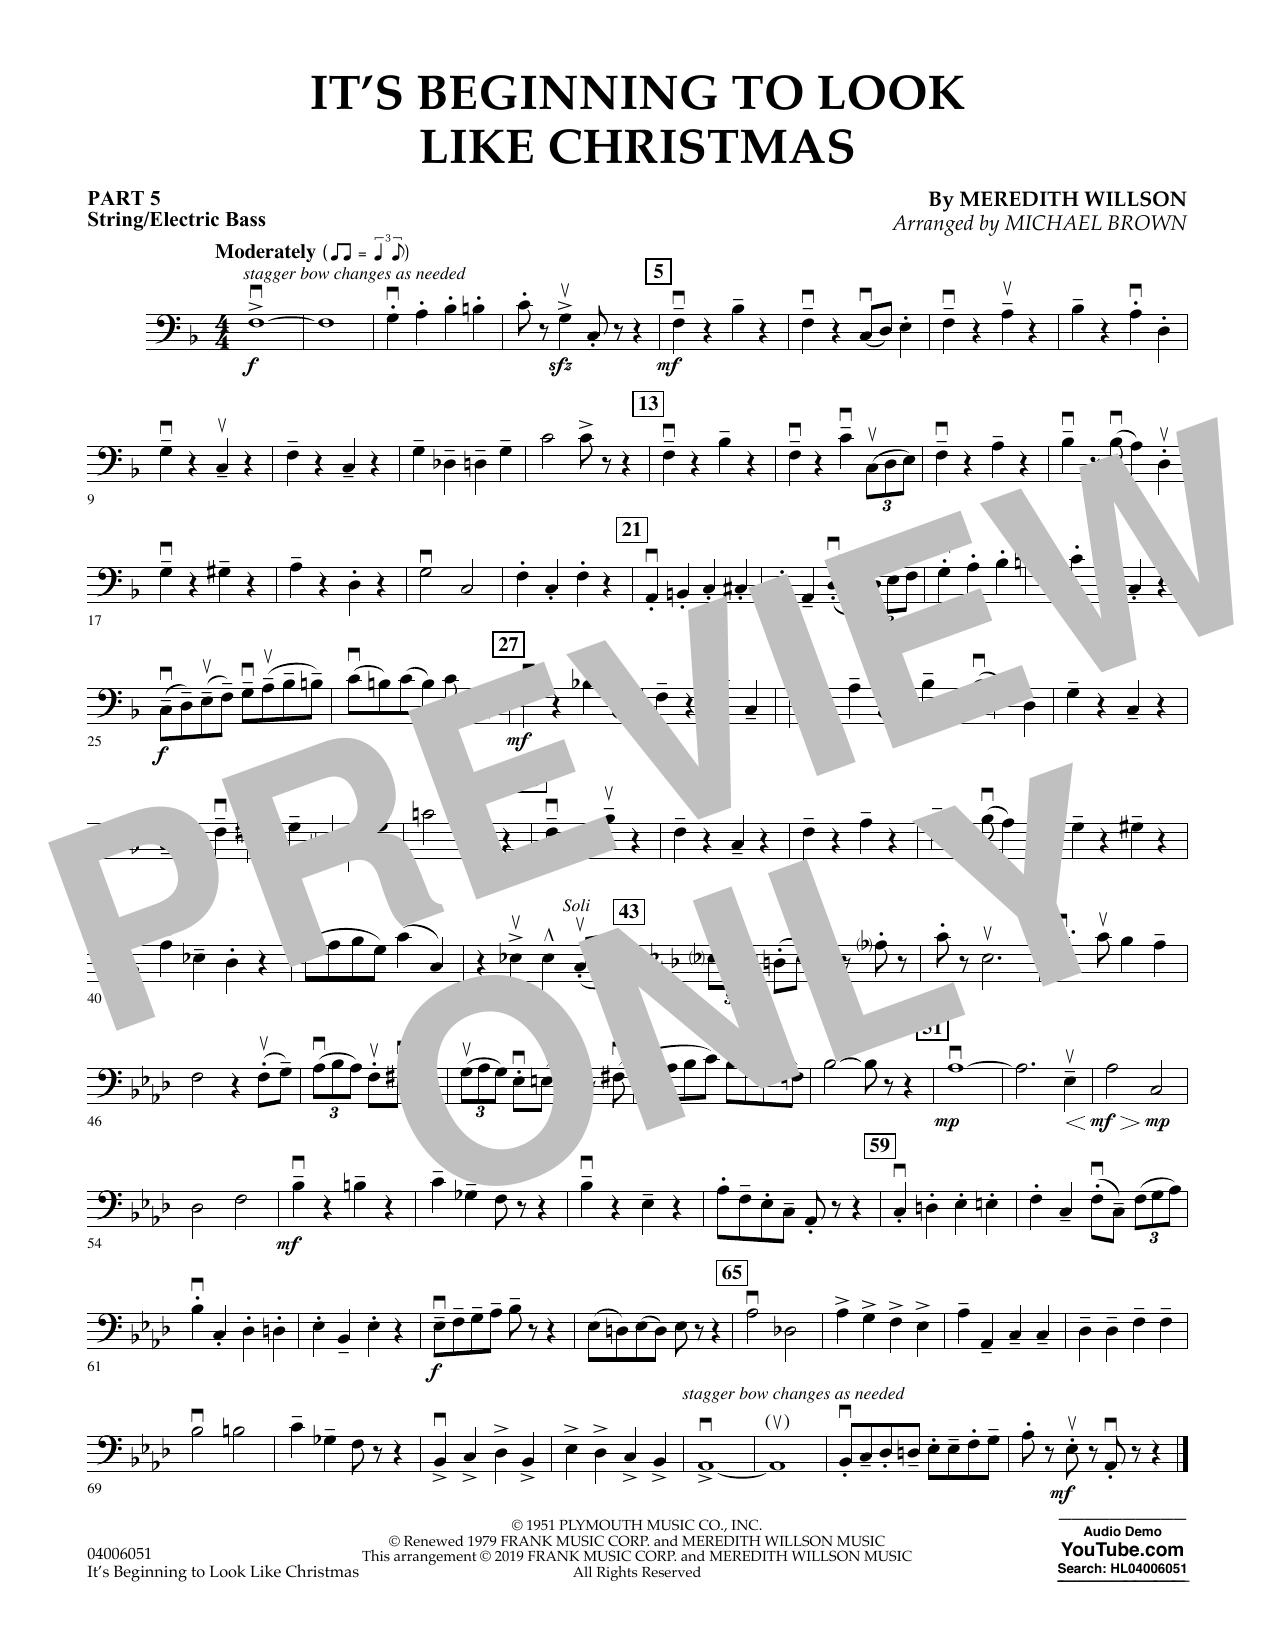 Meredith Willson It's Beginning to Look Like Christmas (arr. Michael Brown) - Pt.5 - String/Electric Bass sheet music preview music notes and score for Concert Band: Flex-Band including 1 page(s)